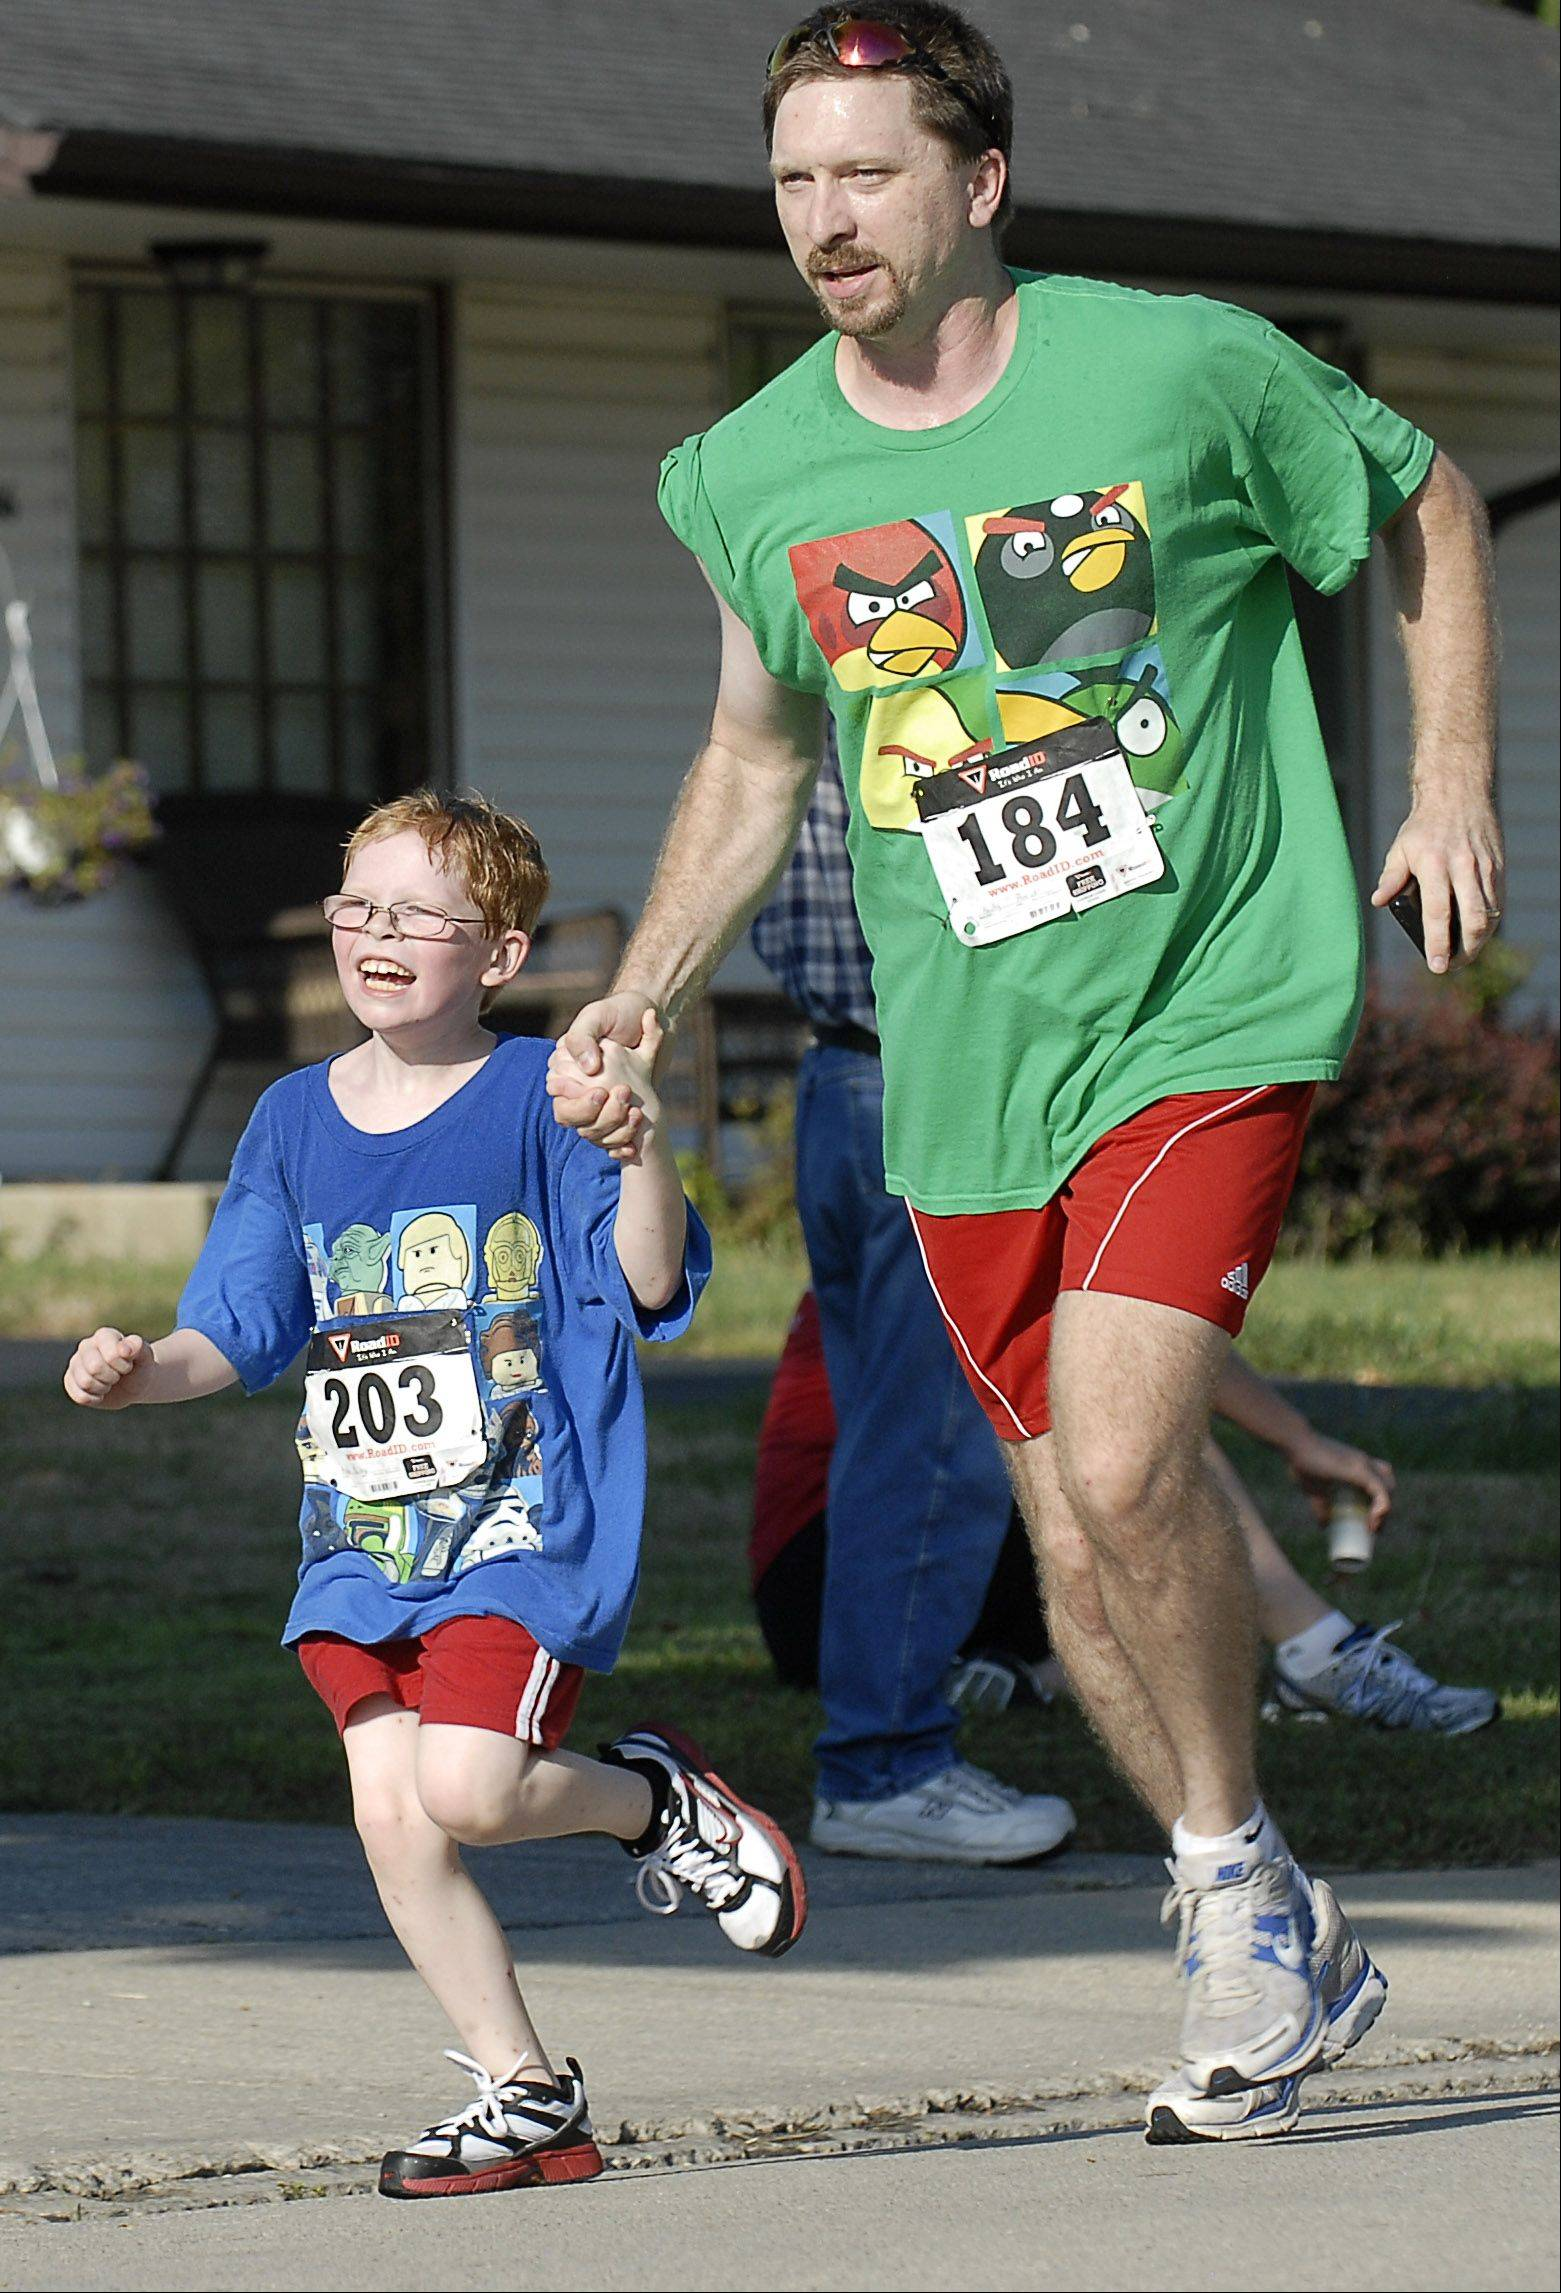 Aiden Bailey, 7, and his father, Patrick, both of Sugar Grove, join hands to cross the finish line together in the Sugar Grove Corn Boil 5K Run/Walk on Saturday. This was Aiden�s first race.